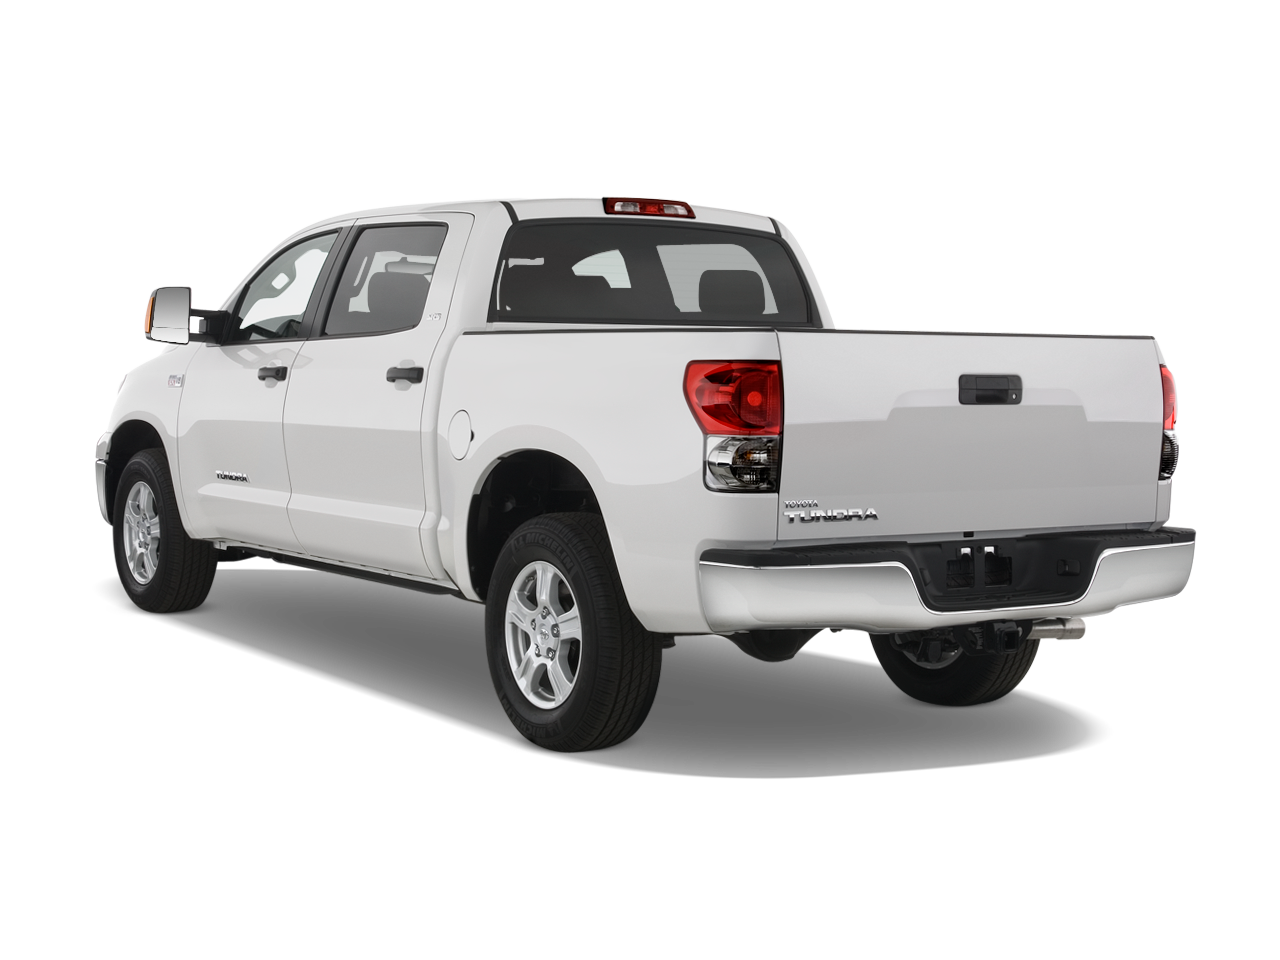 Silverado drawing slammed truck. Toyota once considered high